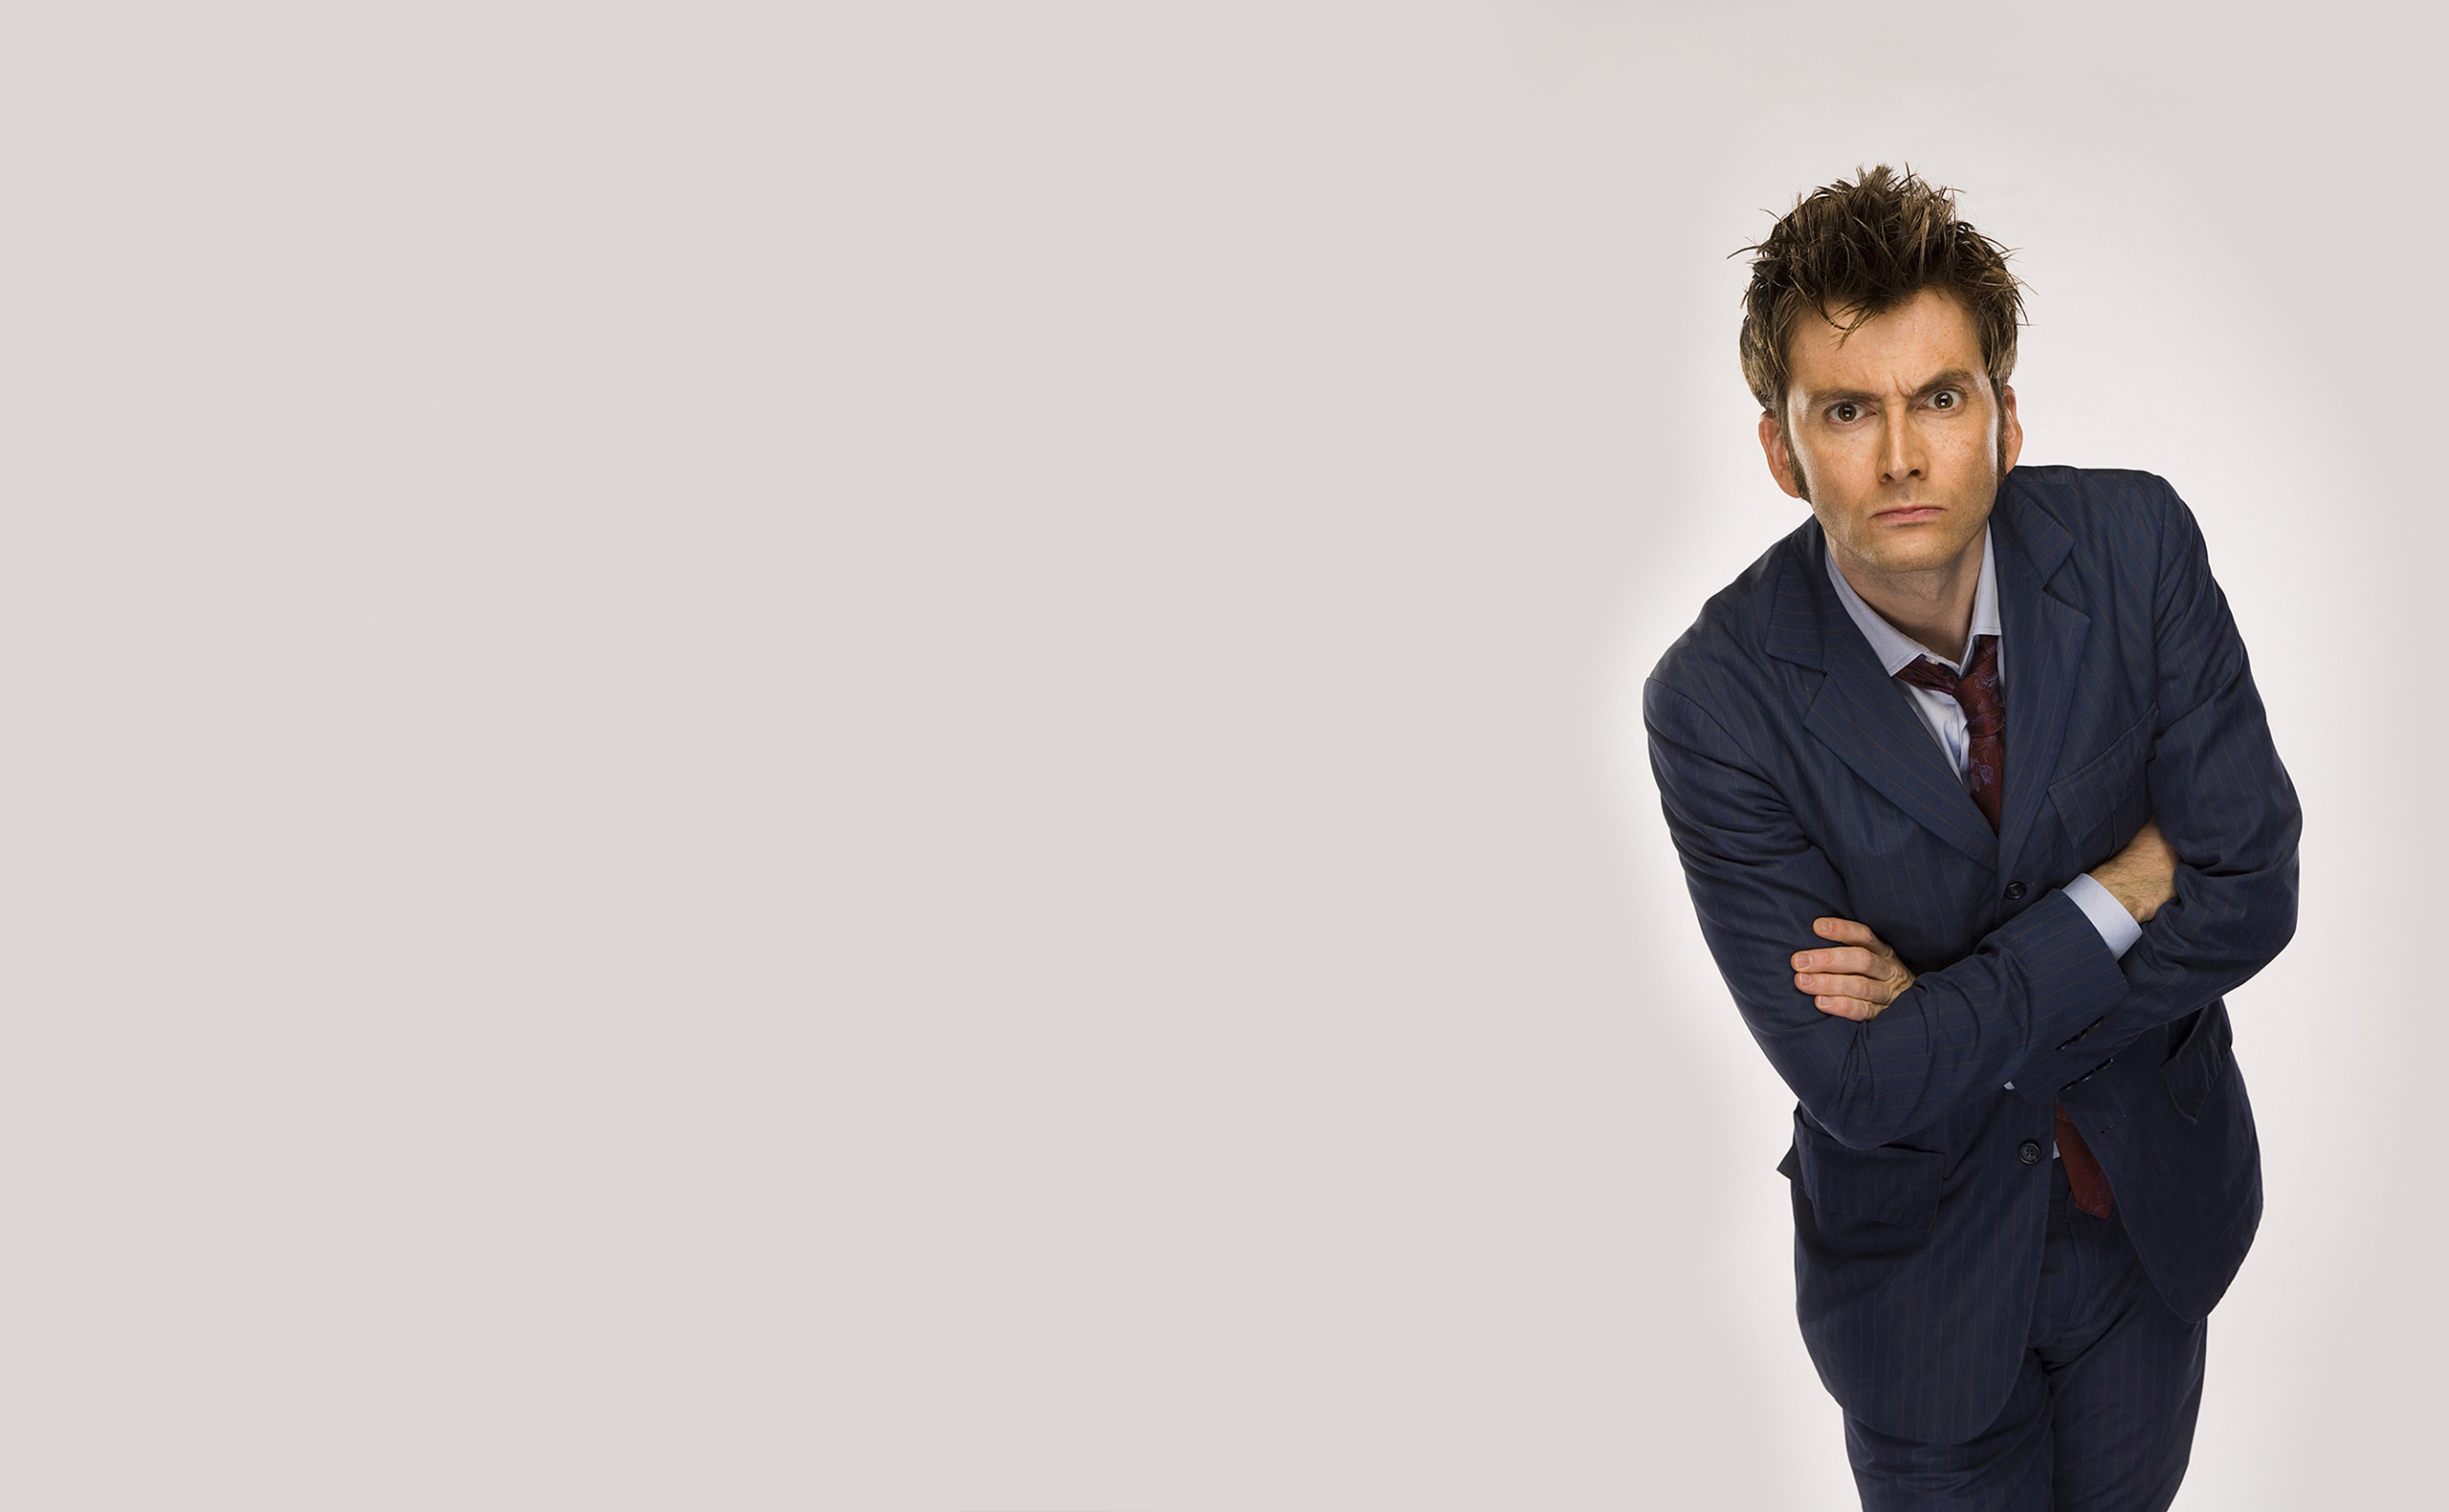 Wallpaper doctor who bbc doctor who tenth doctor tenth doctor 1680x1050